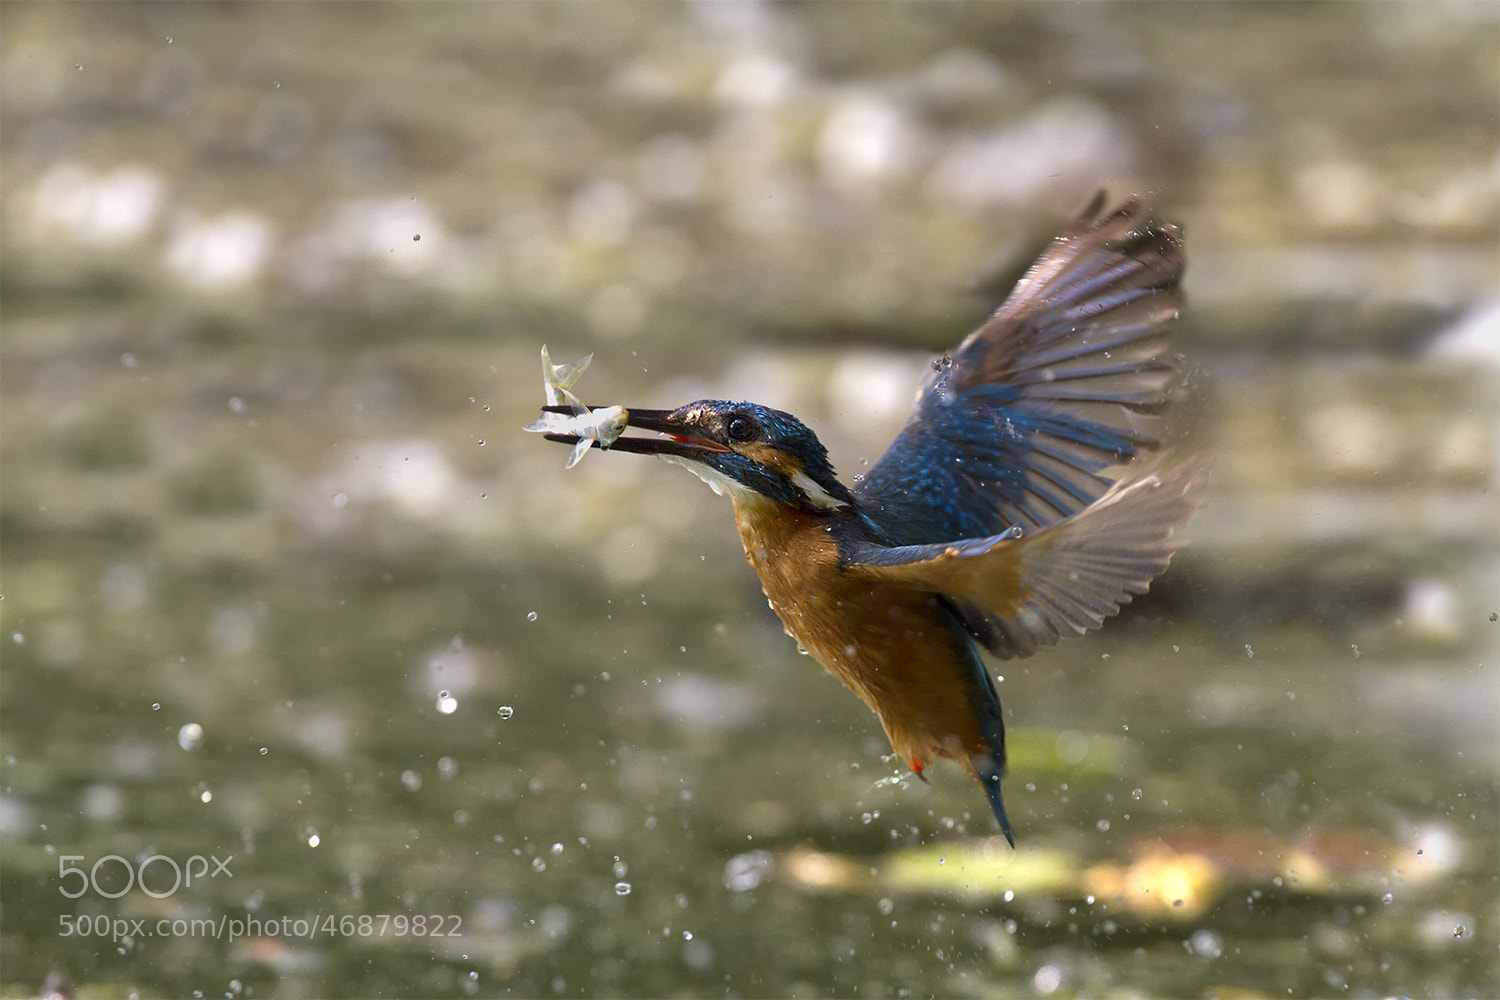 Photograph Drop by Marco Redaelli on 500px